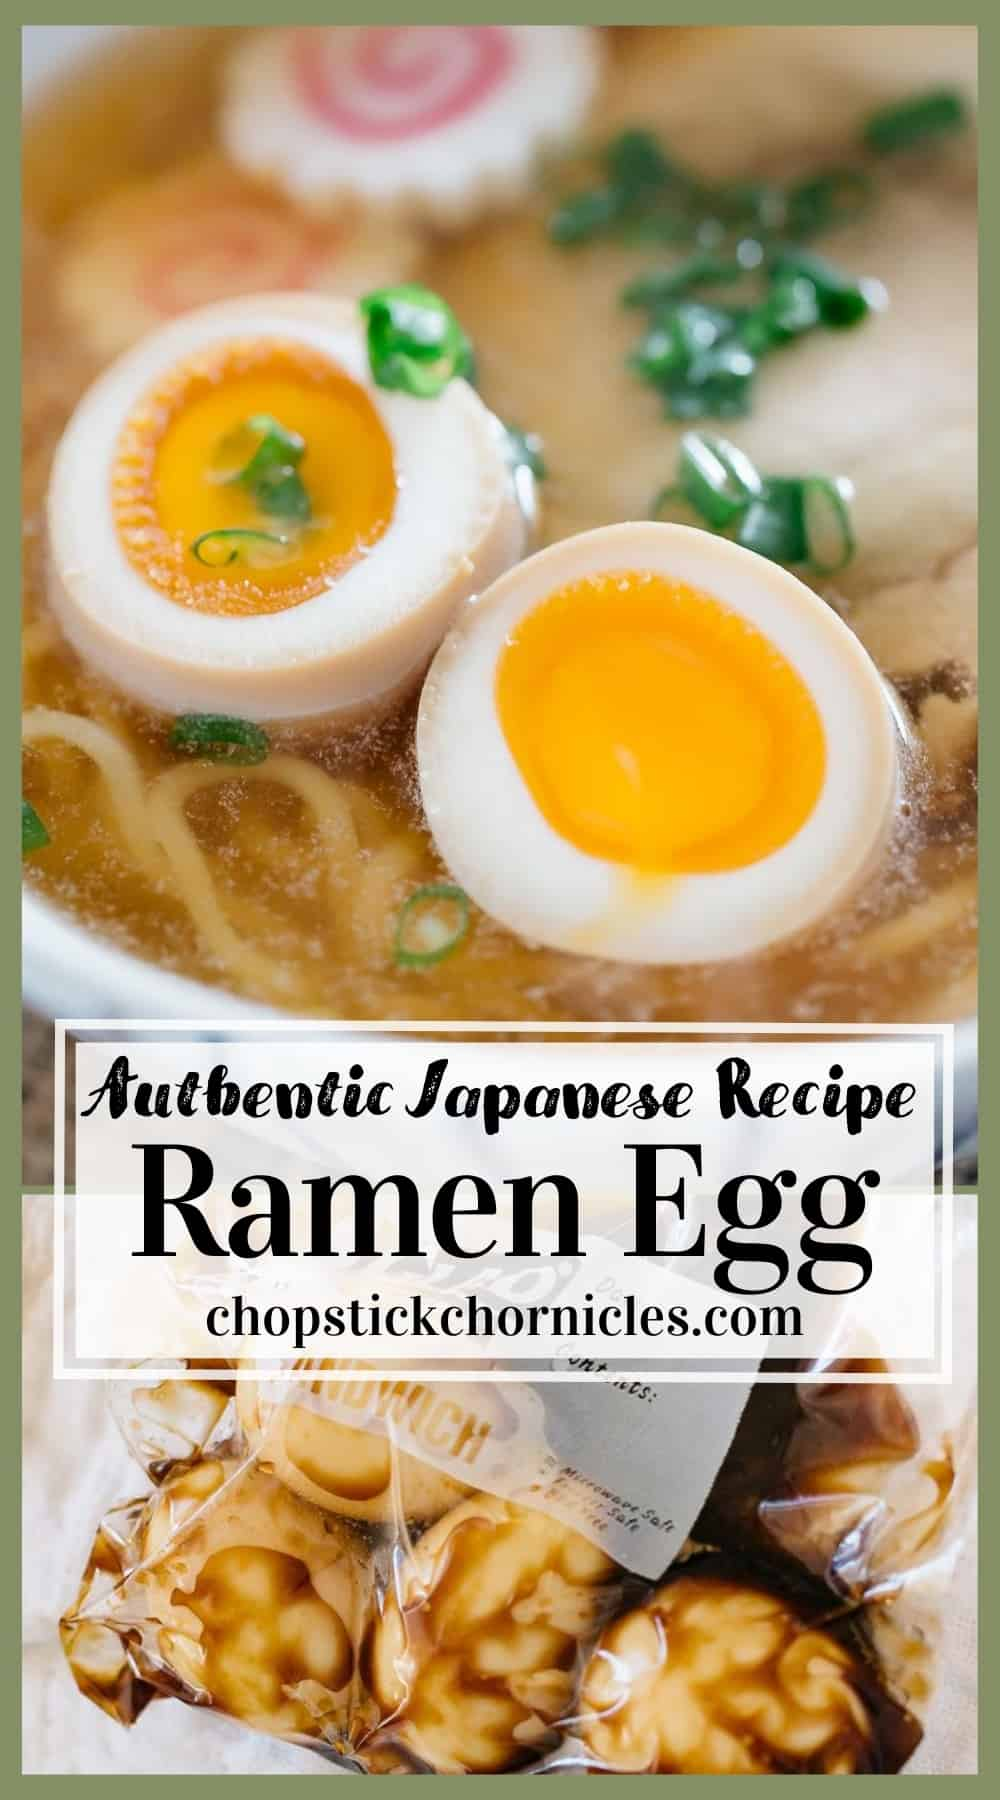 Pinterests pin of Ramen egg with text overlay